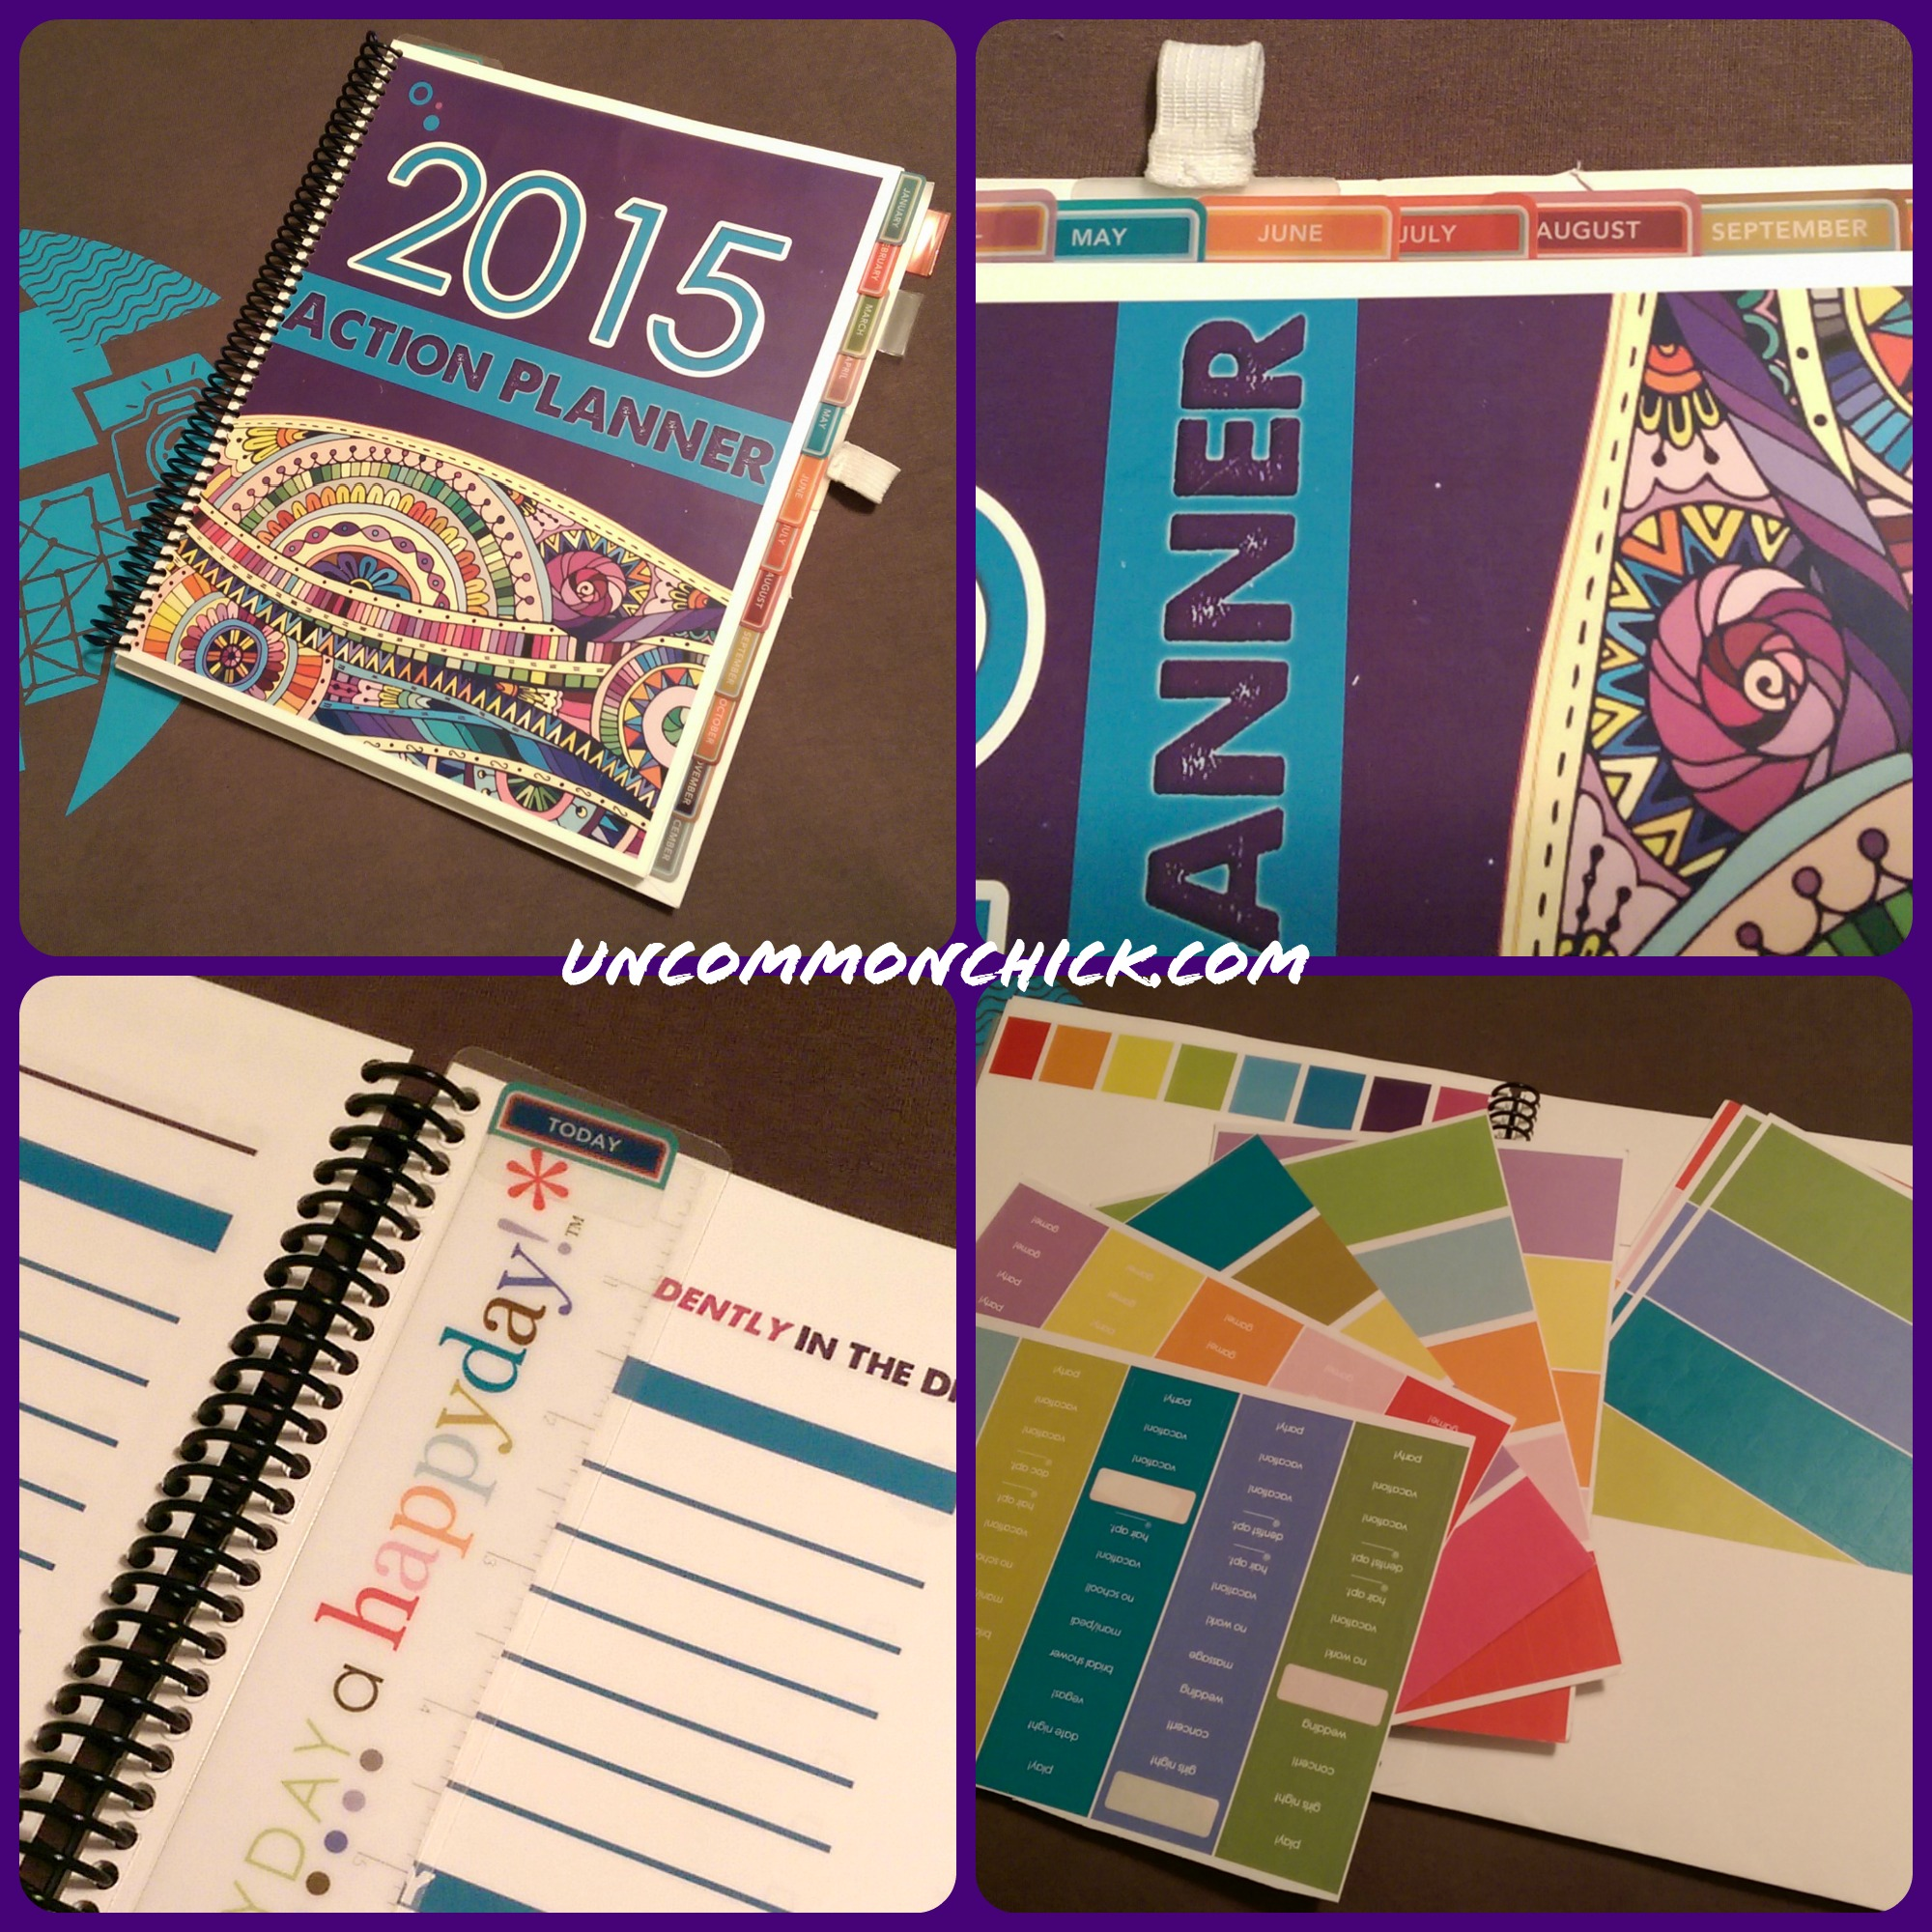 2015 action planner collage uncommon chick